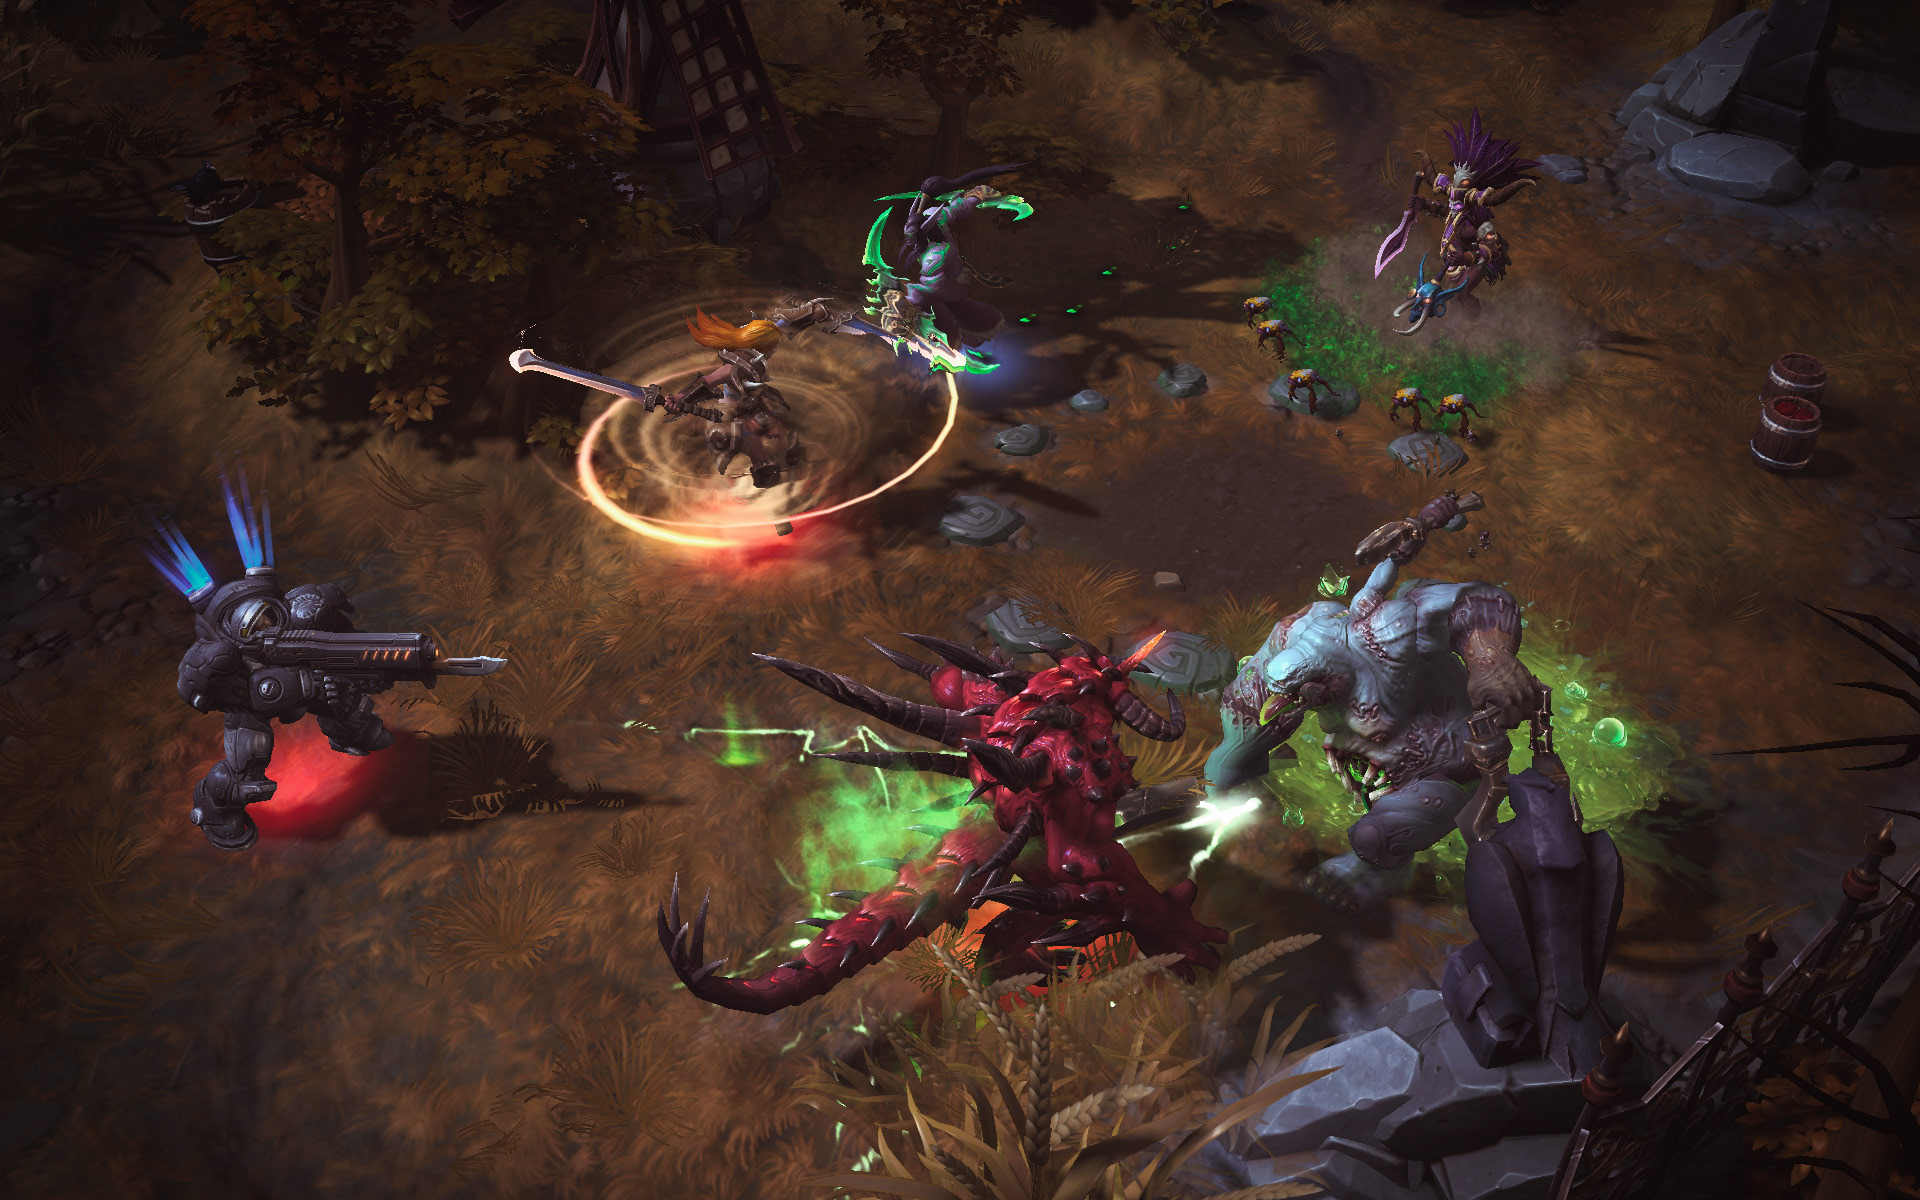 Opinion: How Heroes of the Storm and Infinite Crisis Shakes Up the MOBA World